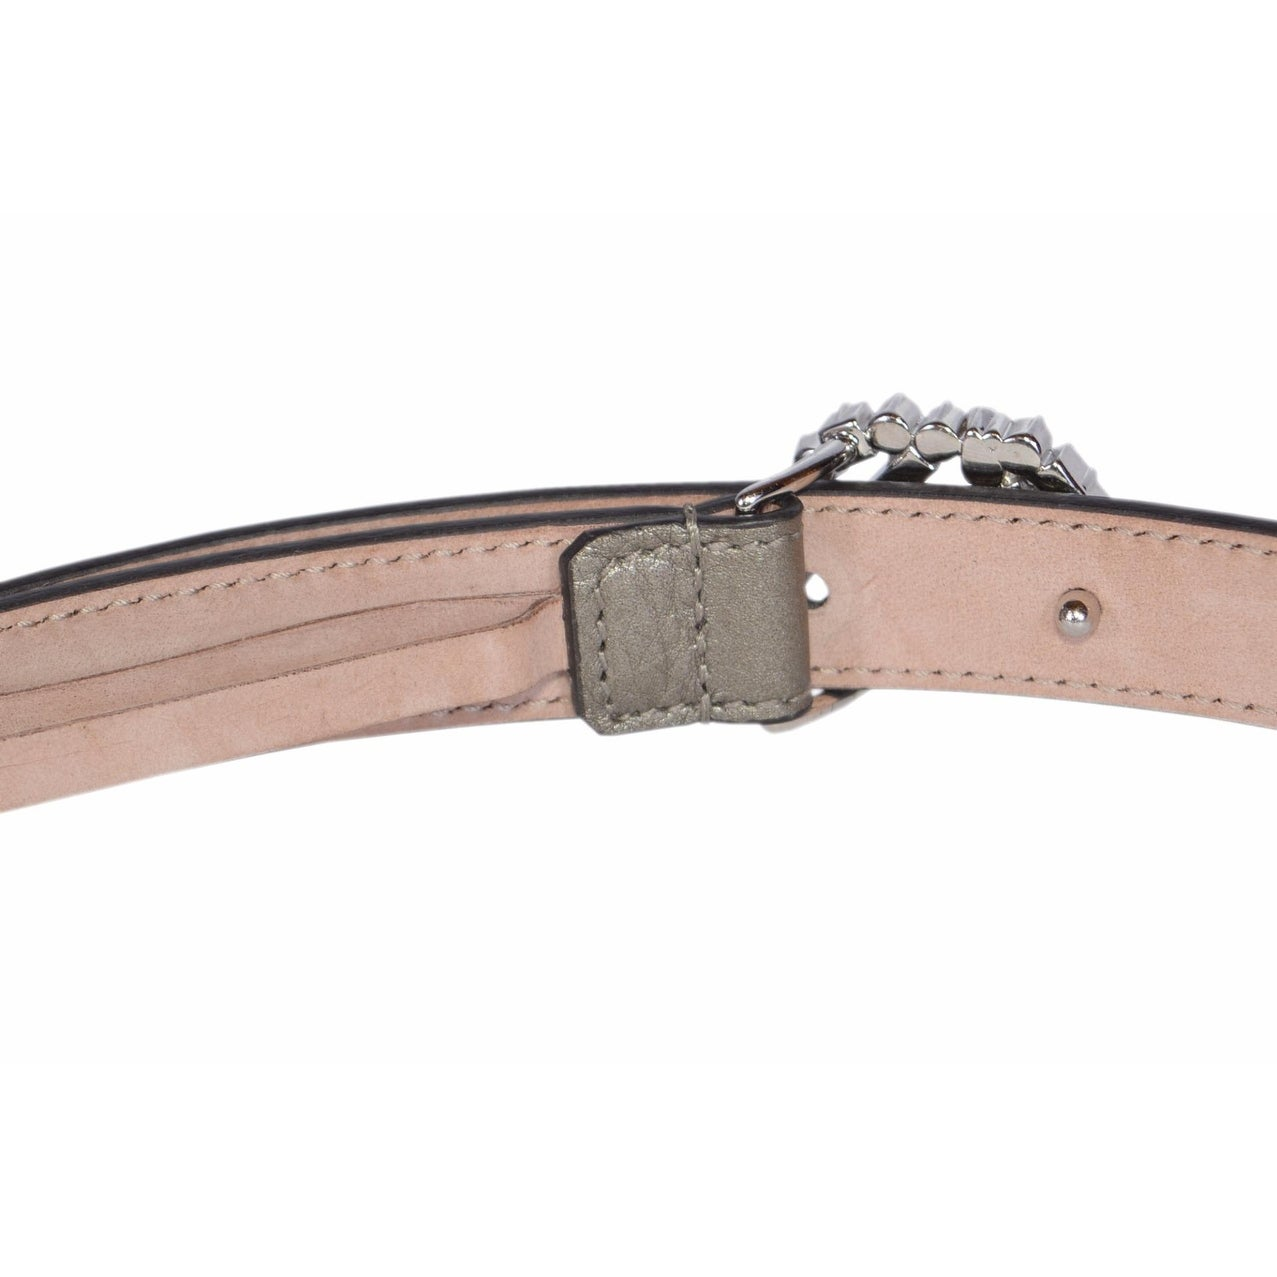 90319aee9 Shop Gucci Women's Metallic Grey Leather Swarovski Crystal GG Buckle Skinny  Belt 38 95 - Free Shipping Today - Overstock - 17613033